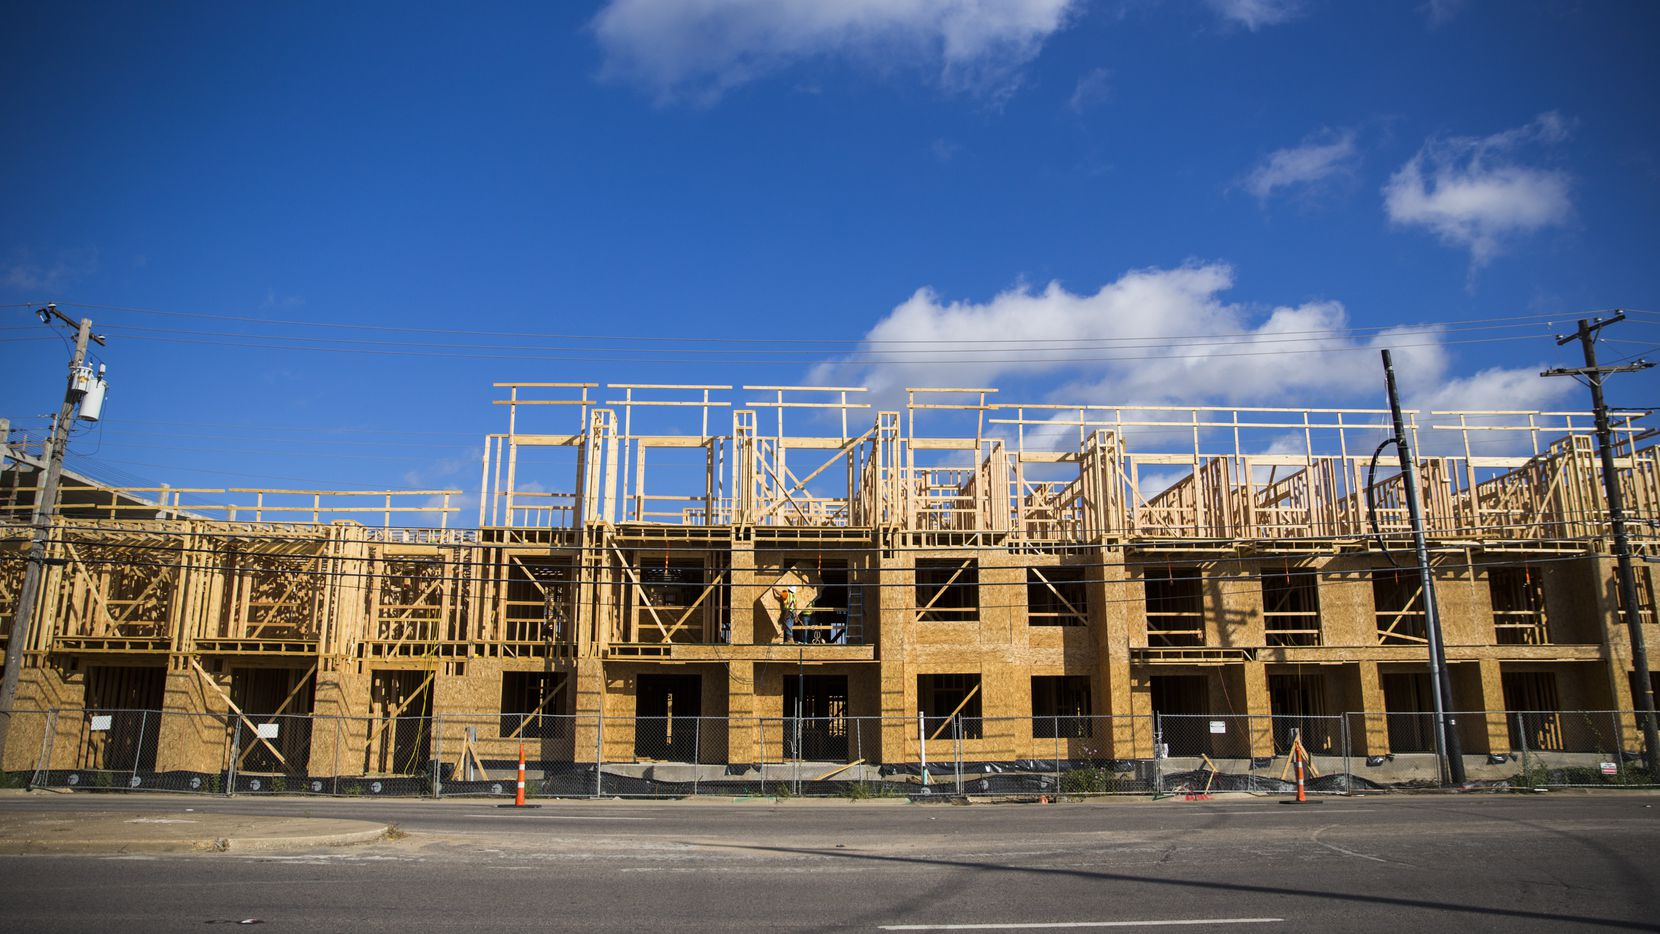 More than 42,000 apartments units were under construction in the D-FW area at the end of June.